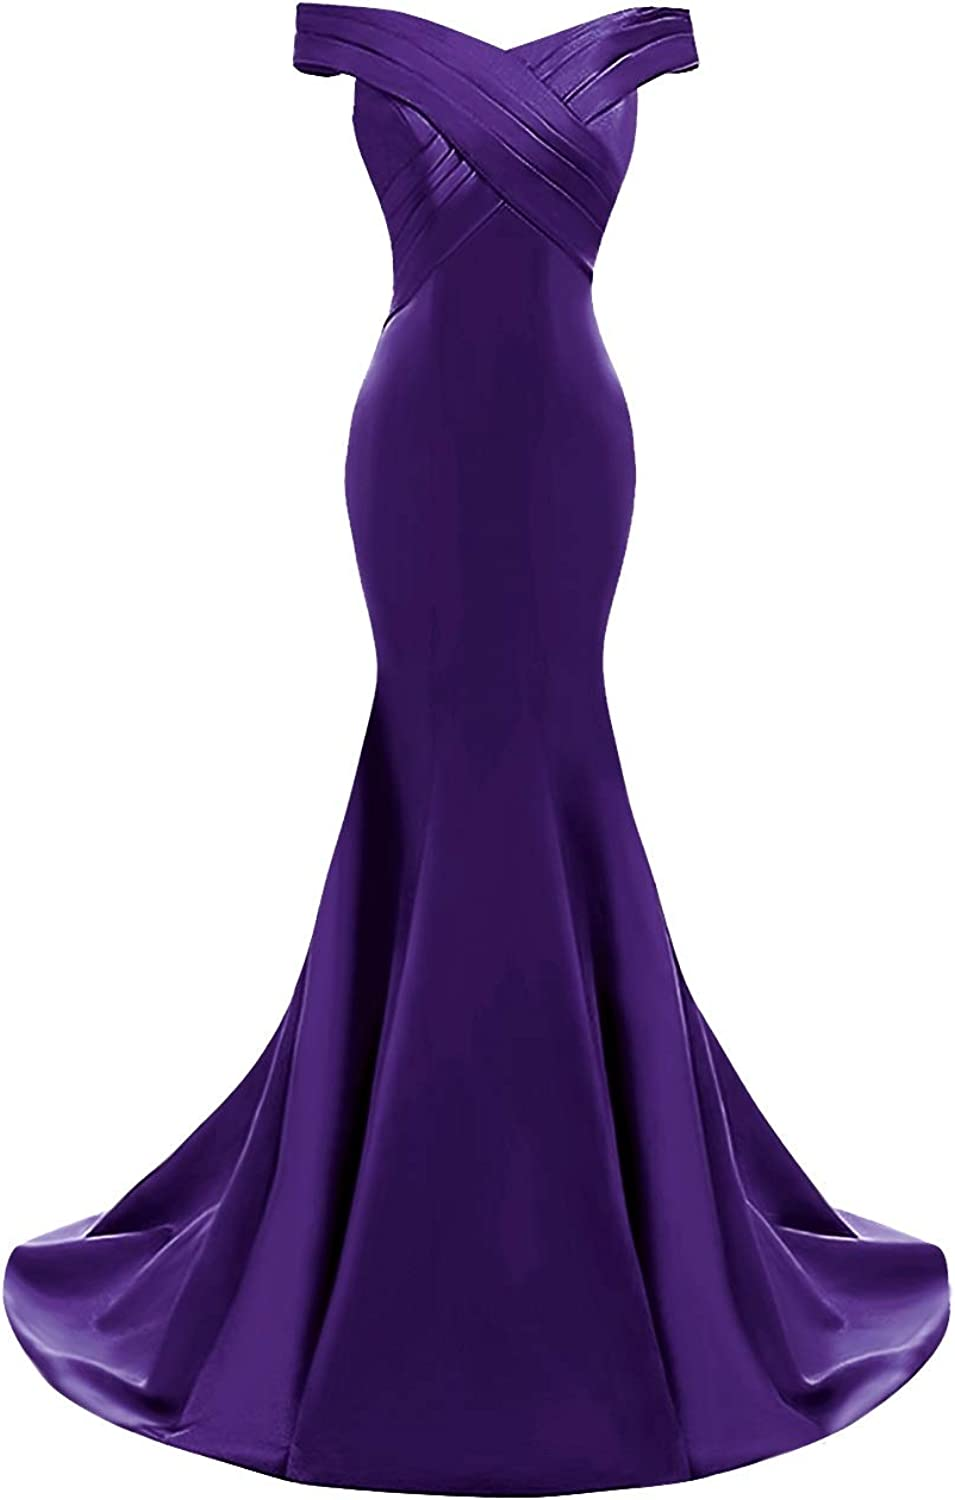 SUNFURA Women's Mermaid Off Shoulder Long Ruched Formal Prom Evening Dress